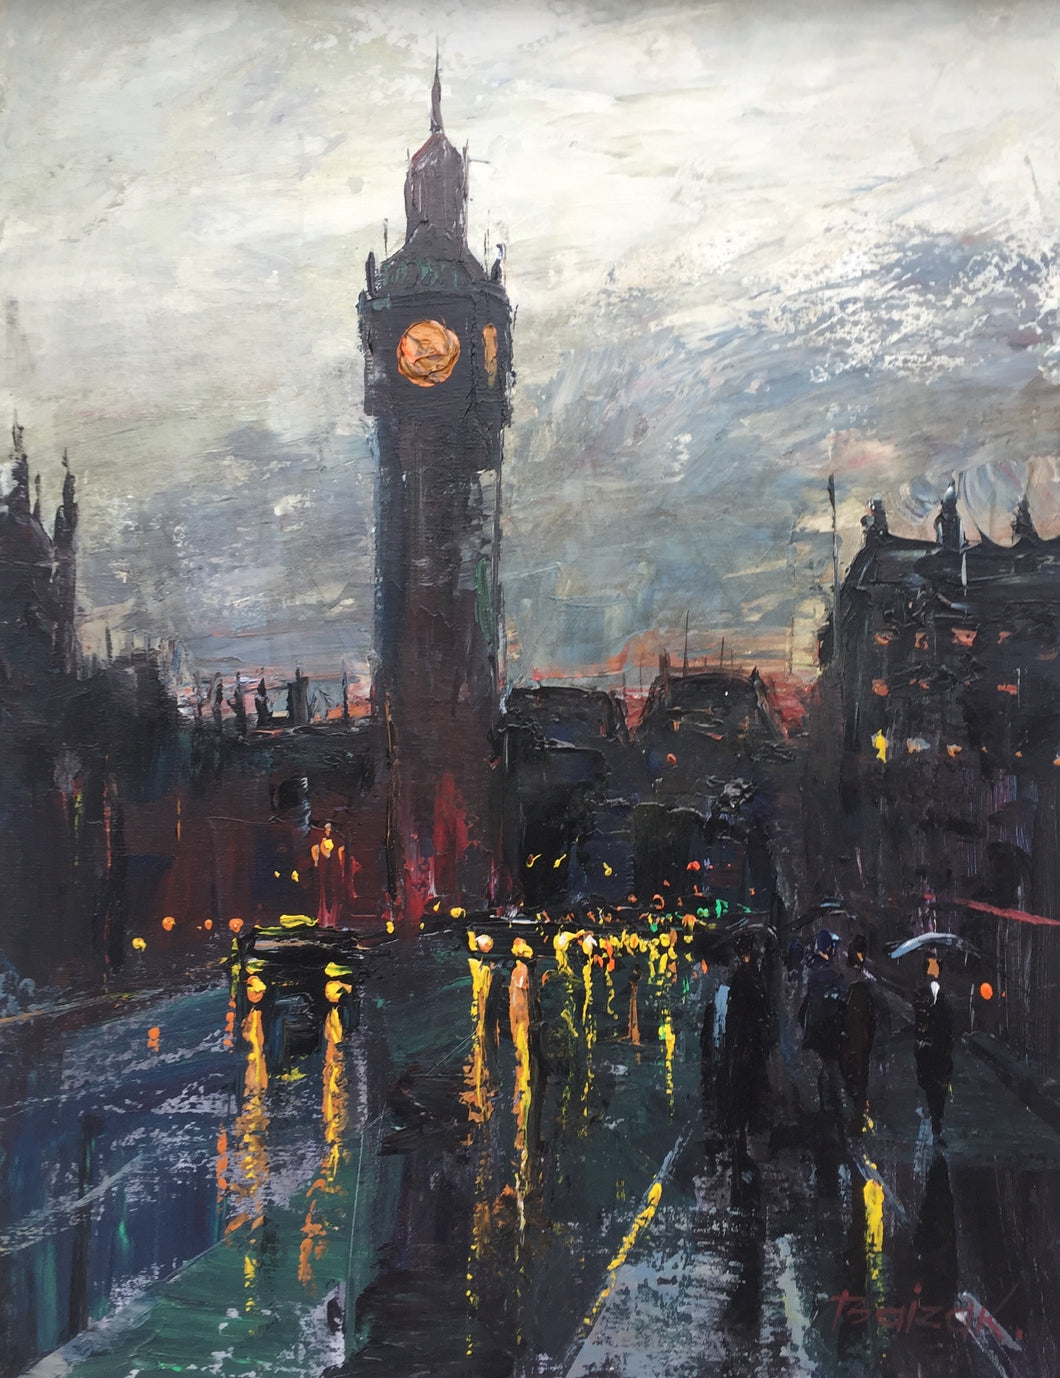 Big Ben Standing In The Rain by Baizak Alabayev